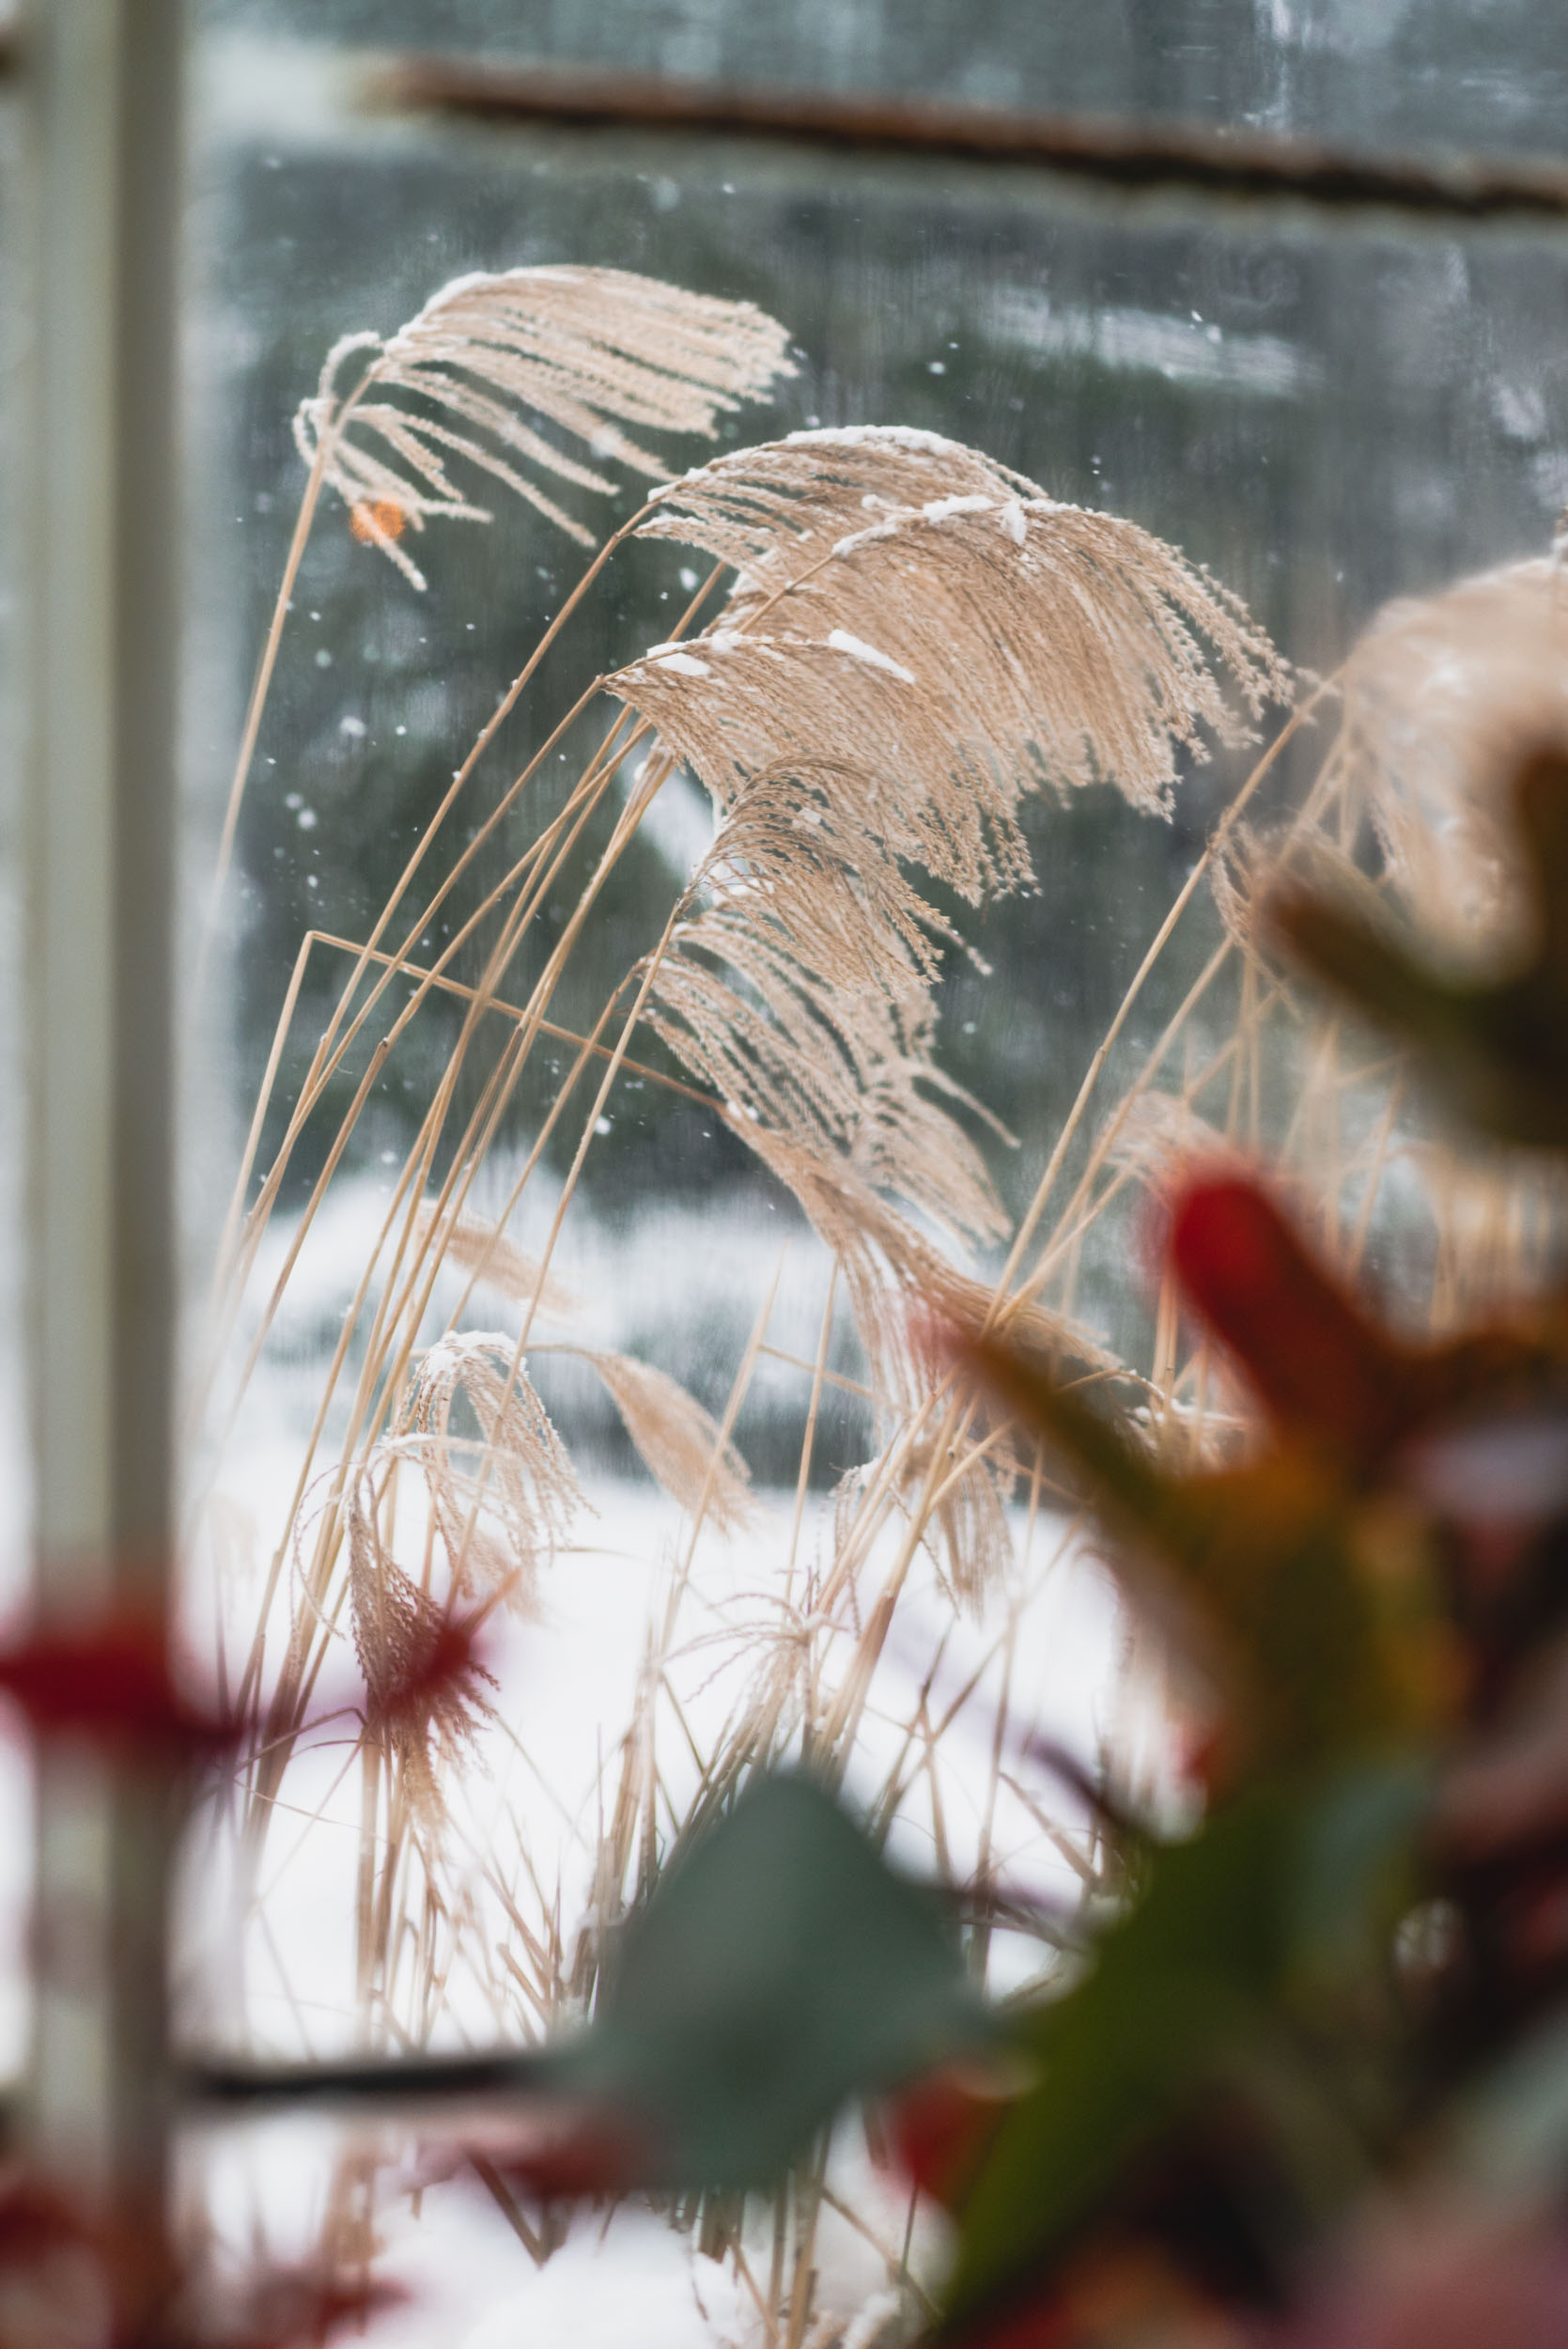 Snowy weather through conservatory window